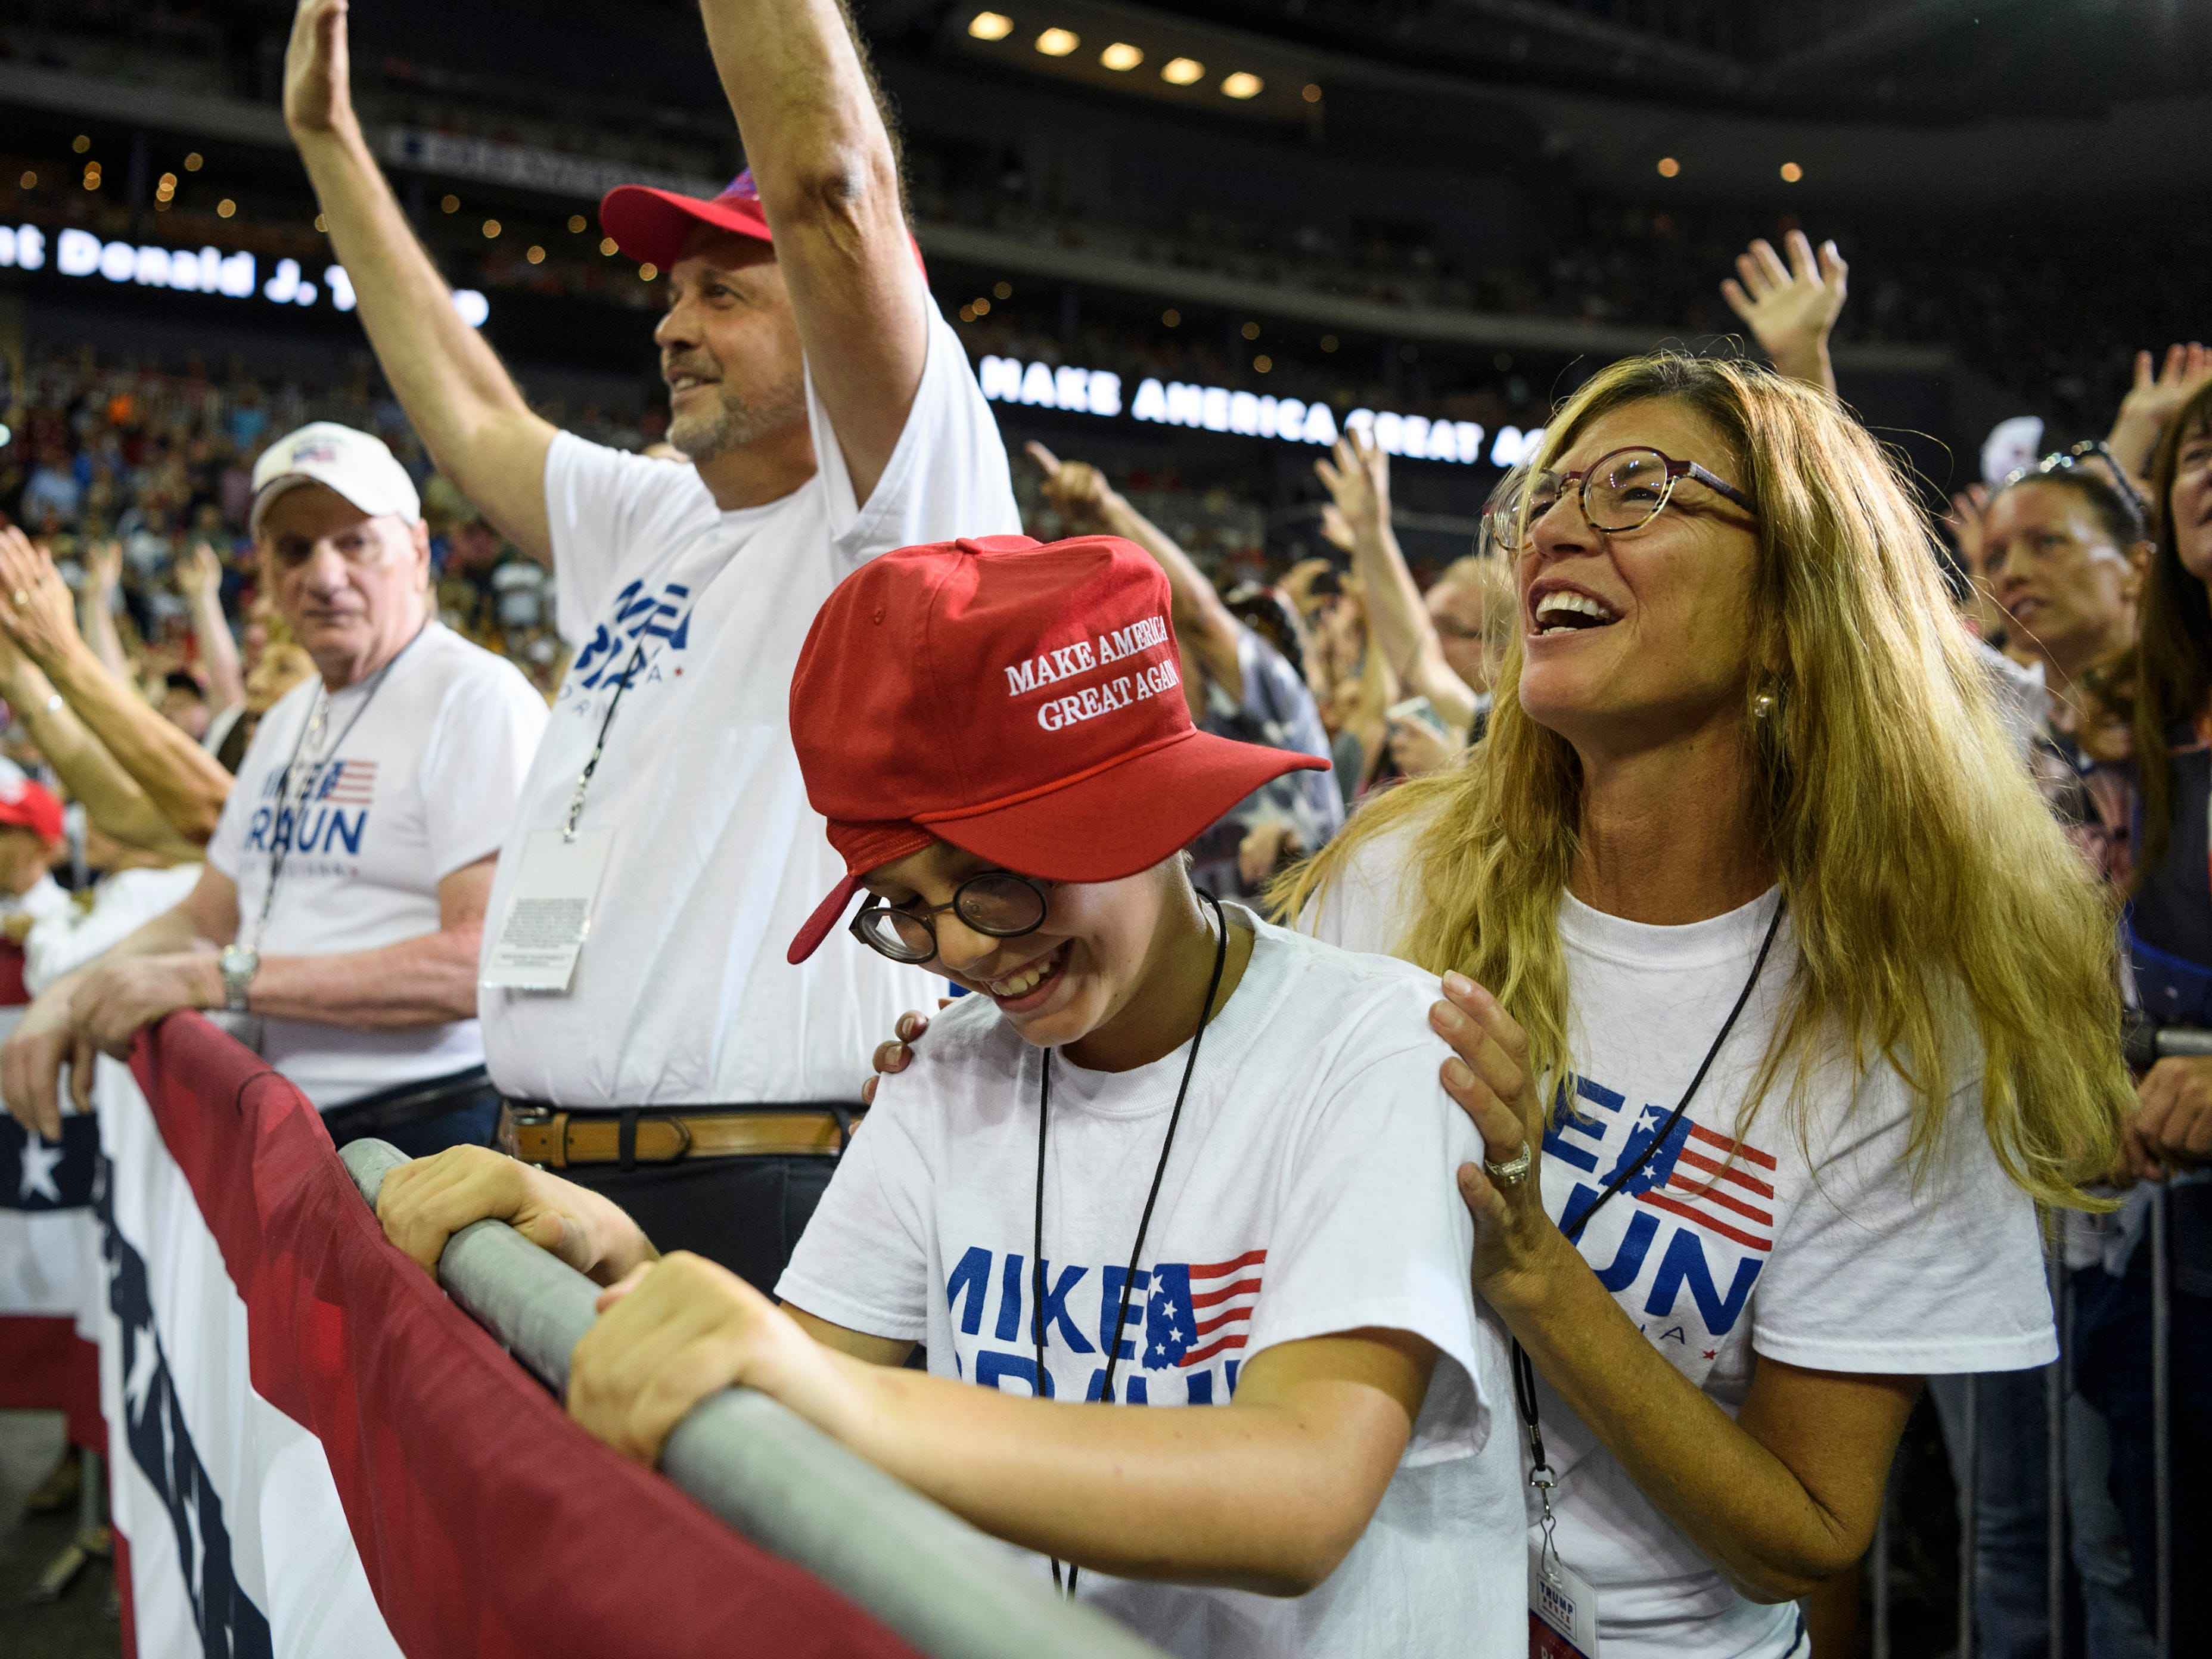 Jasper residents Samuel Osterman, 11, front center, Melissa Osterman, right, and Merrill Osterman, back, cheer with the crowd as they stand in front of the podium for President Donald Trump's Make America Great Again rally in support of U.S. Senate candidate Mike Braun at the Ford Center in Evansville, Ind., Thursday, Aug. 30, 2018.